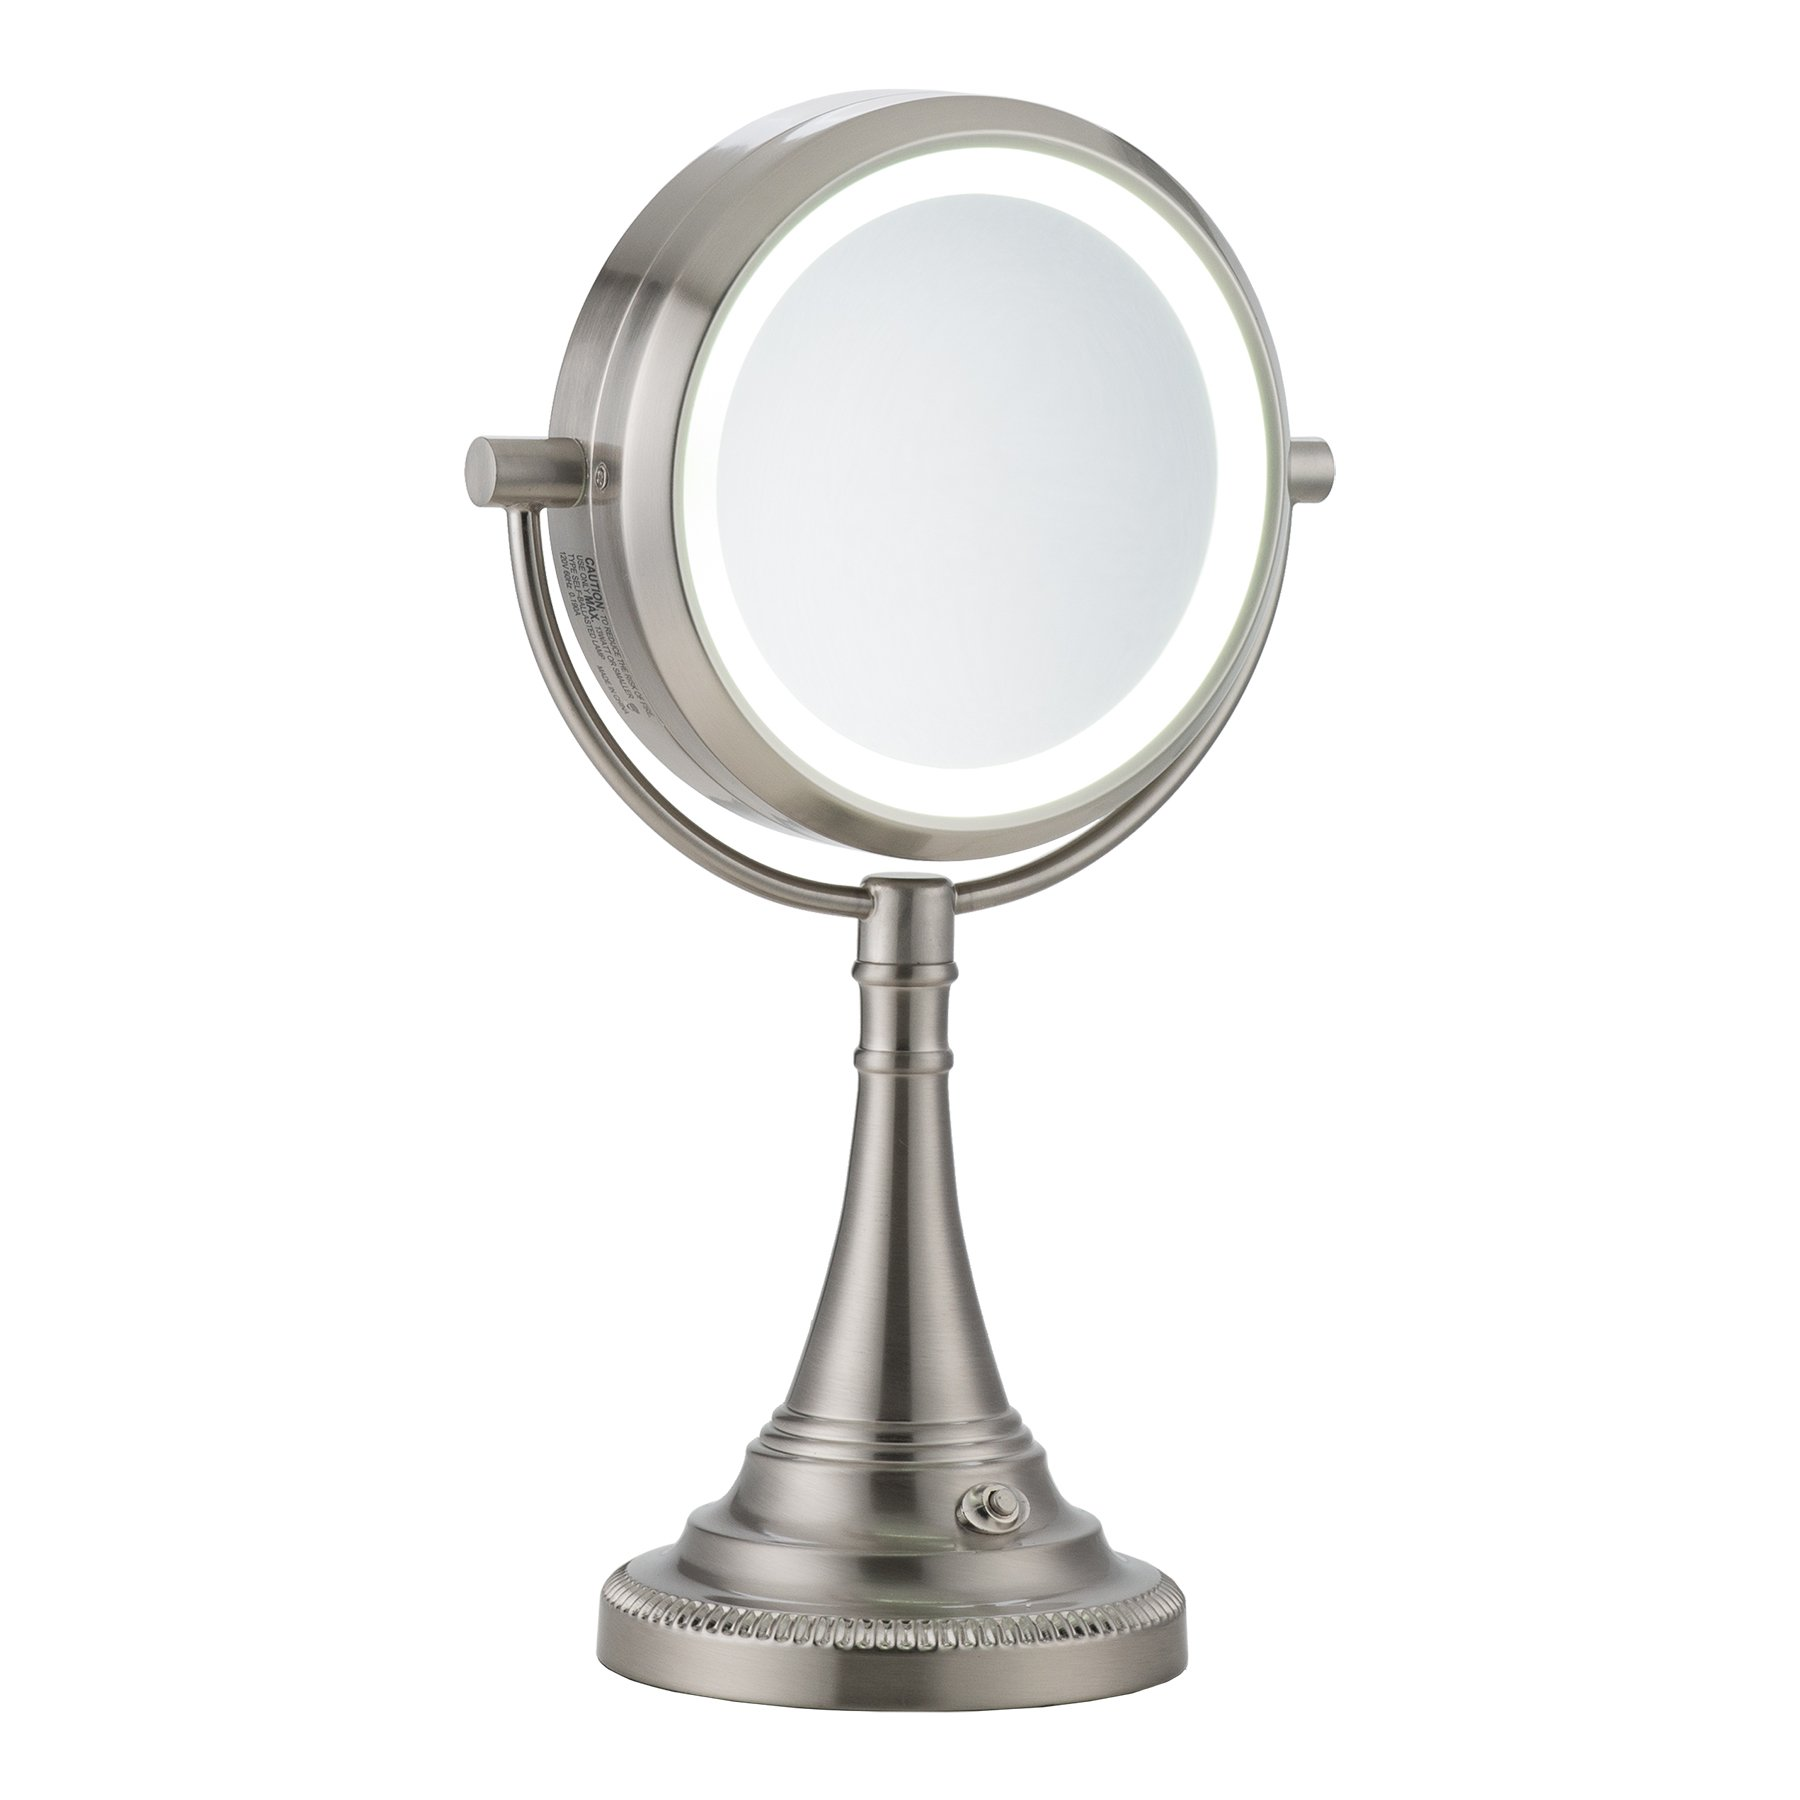 CO-Z Elegant Magnifying Lighted Makeup Vanity Mirror, Dual Sided Brushed Nickel Makeup Mirror with 10X Magnification for Women